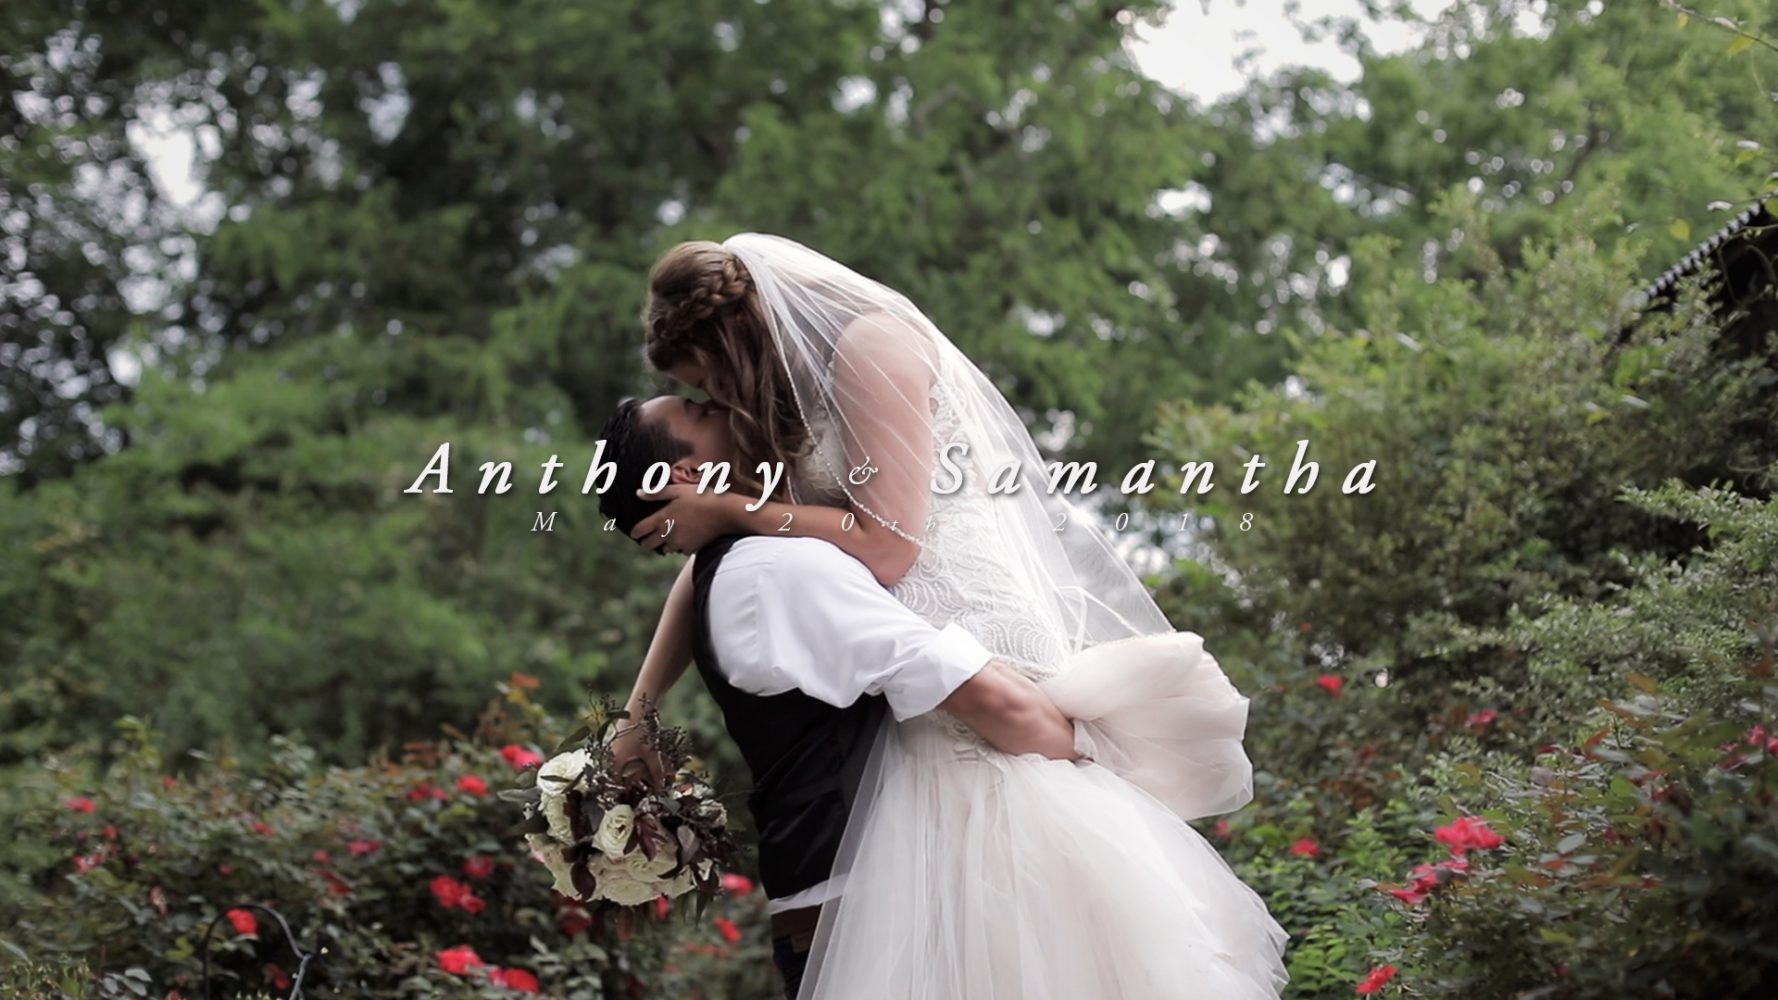 Anthony + Samantha | Nashville, Tennessee | Meadow Hill Farm